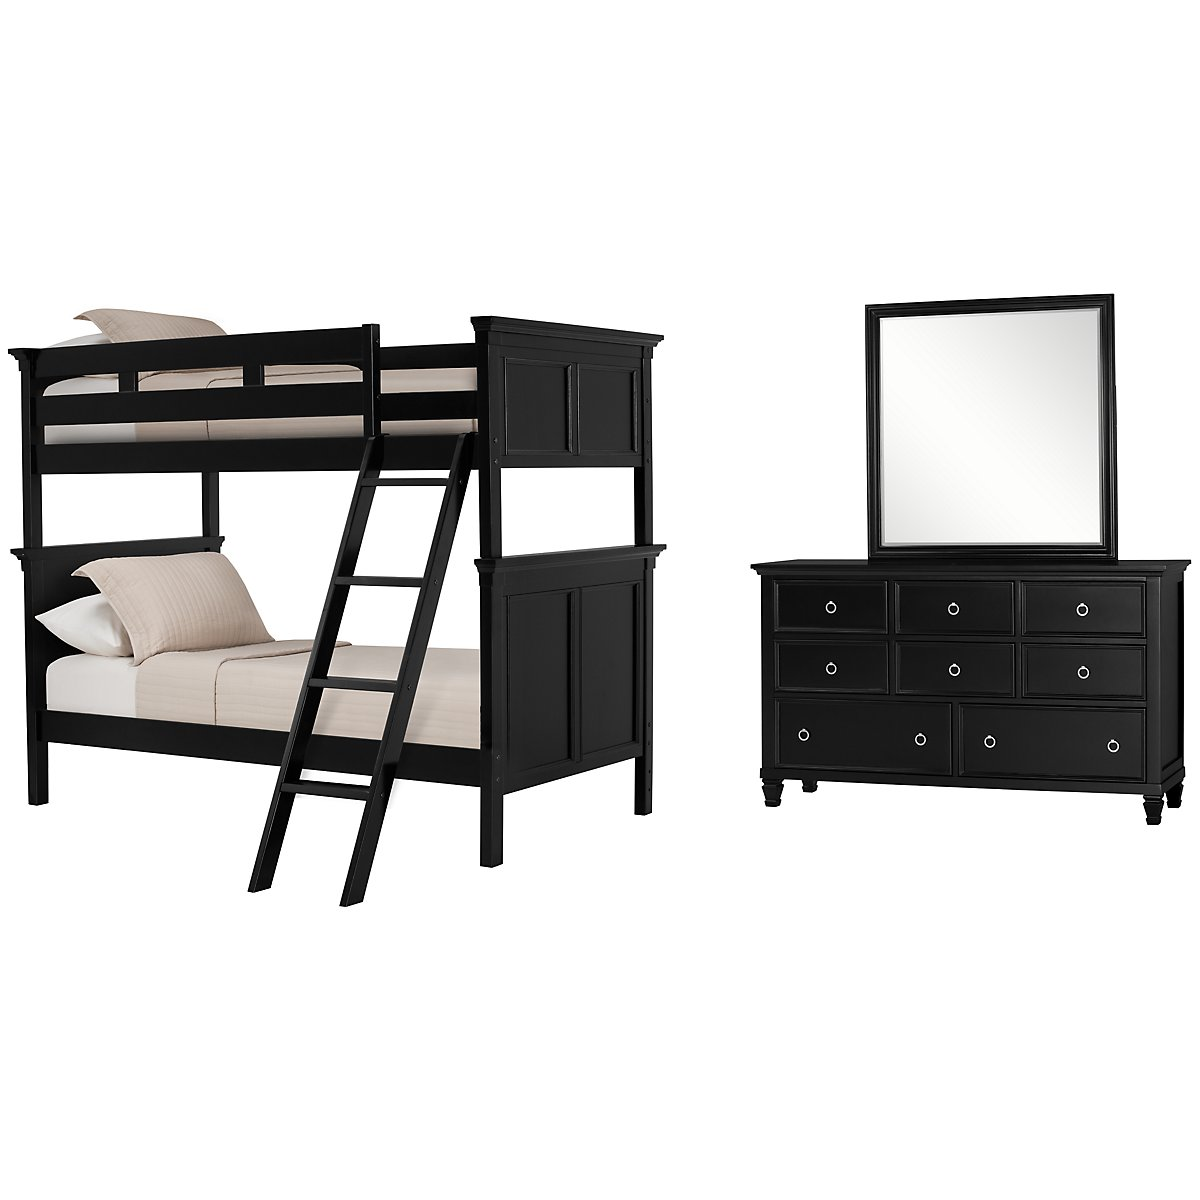 Tamara Black Wood Bunk Bed Bedroom